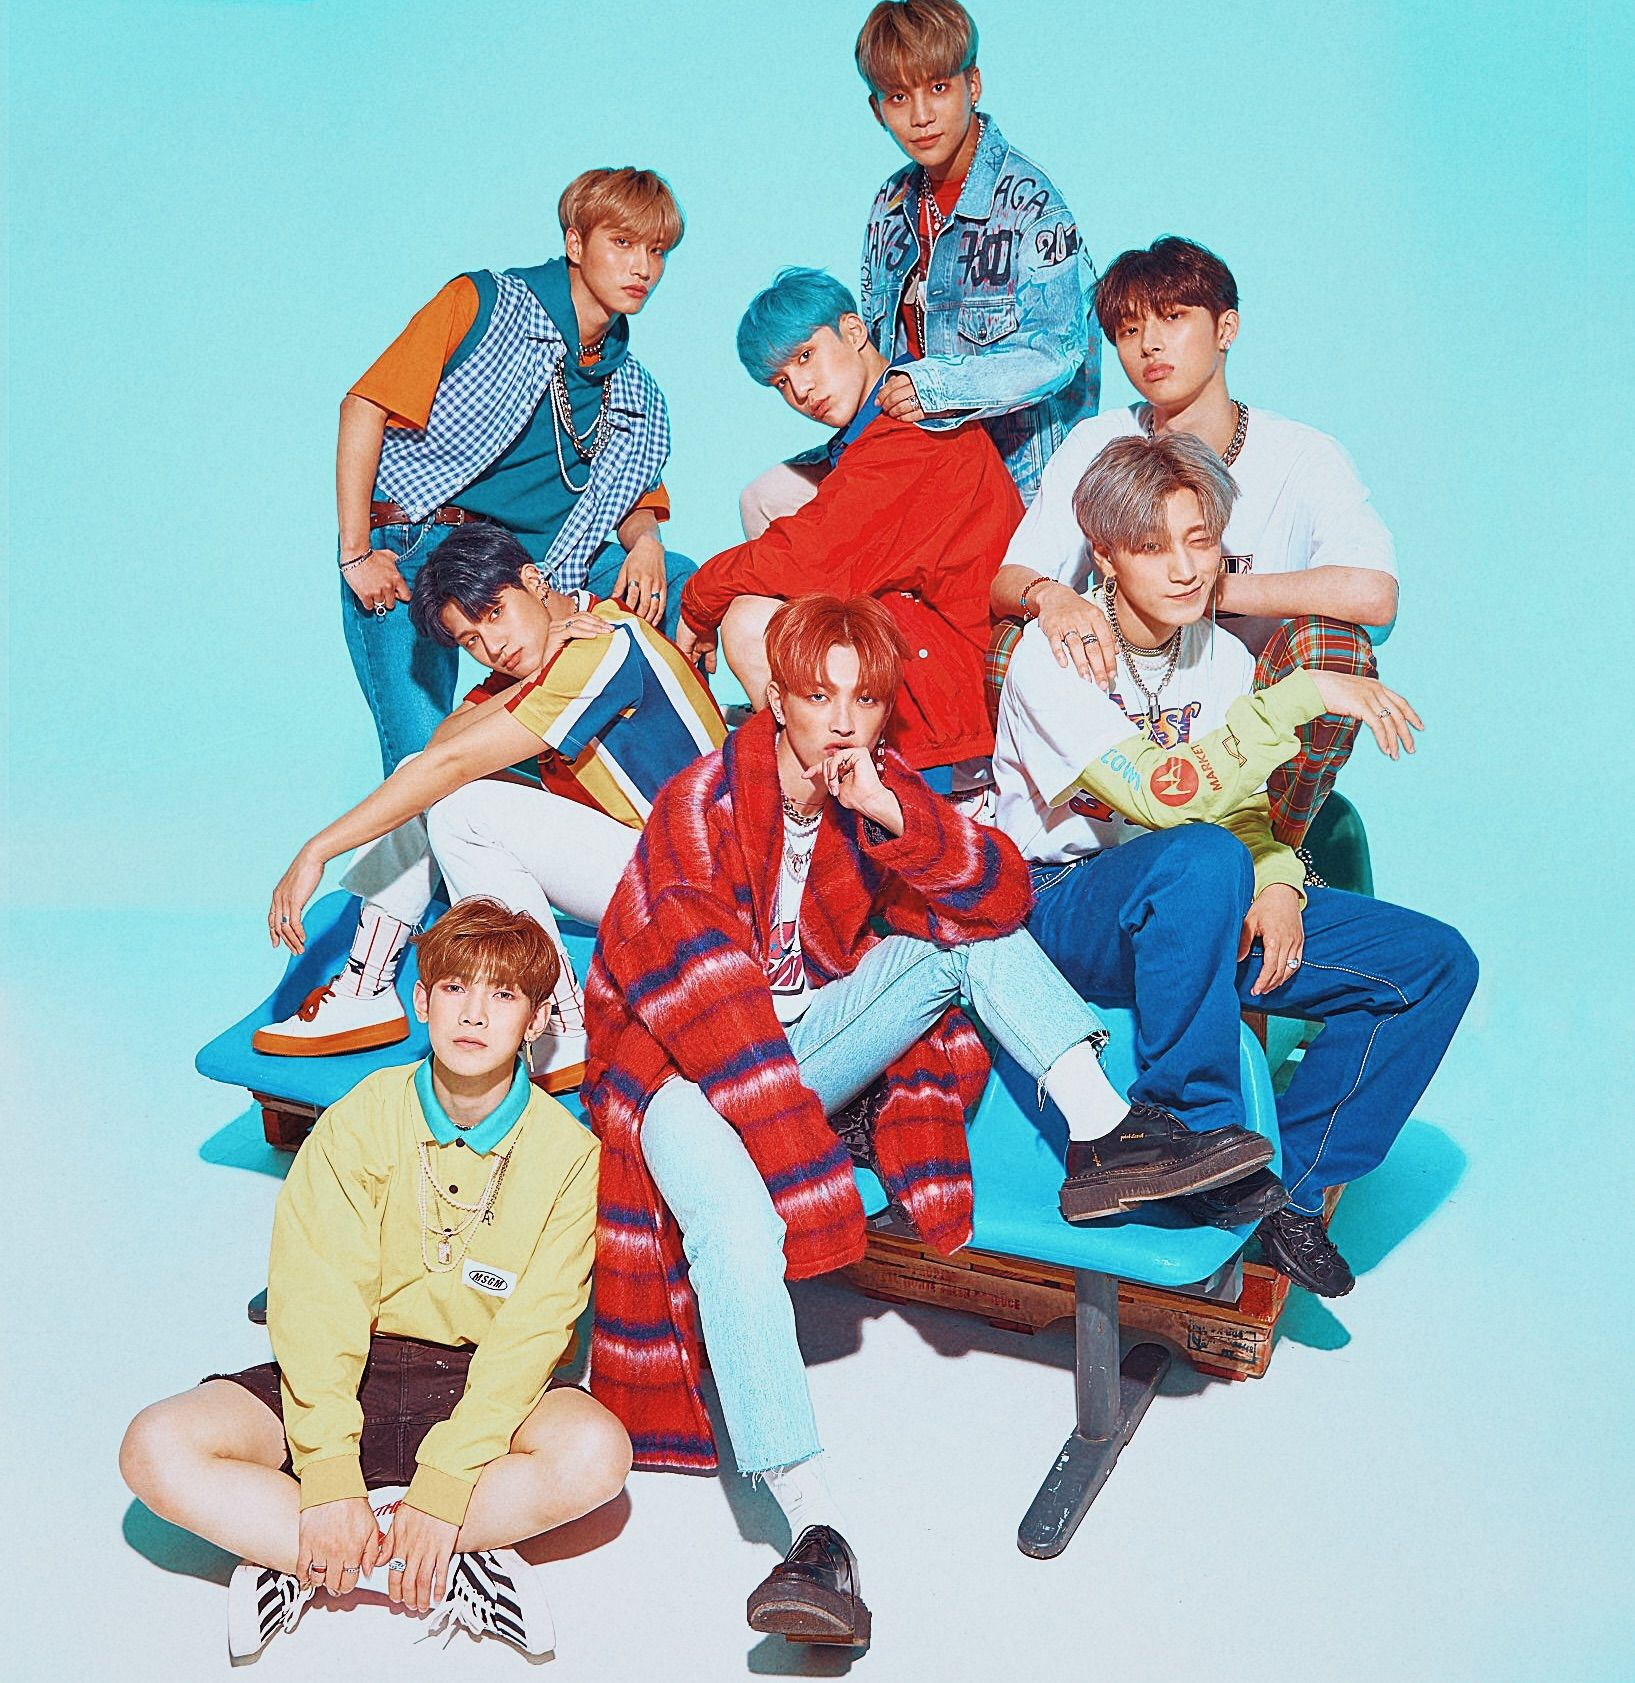 ATEEZ PHOTOSHOOT Kpop guys, Woo young, Pop